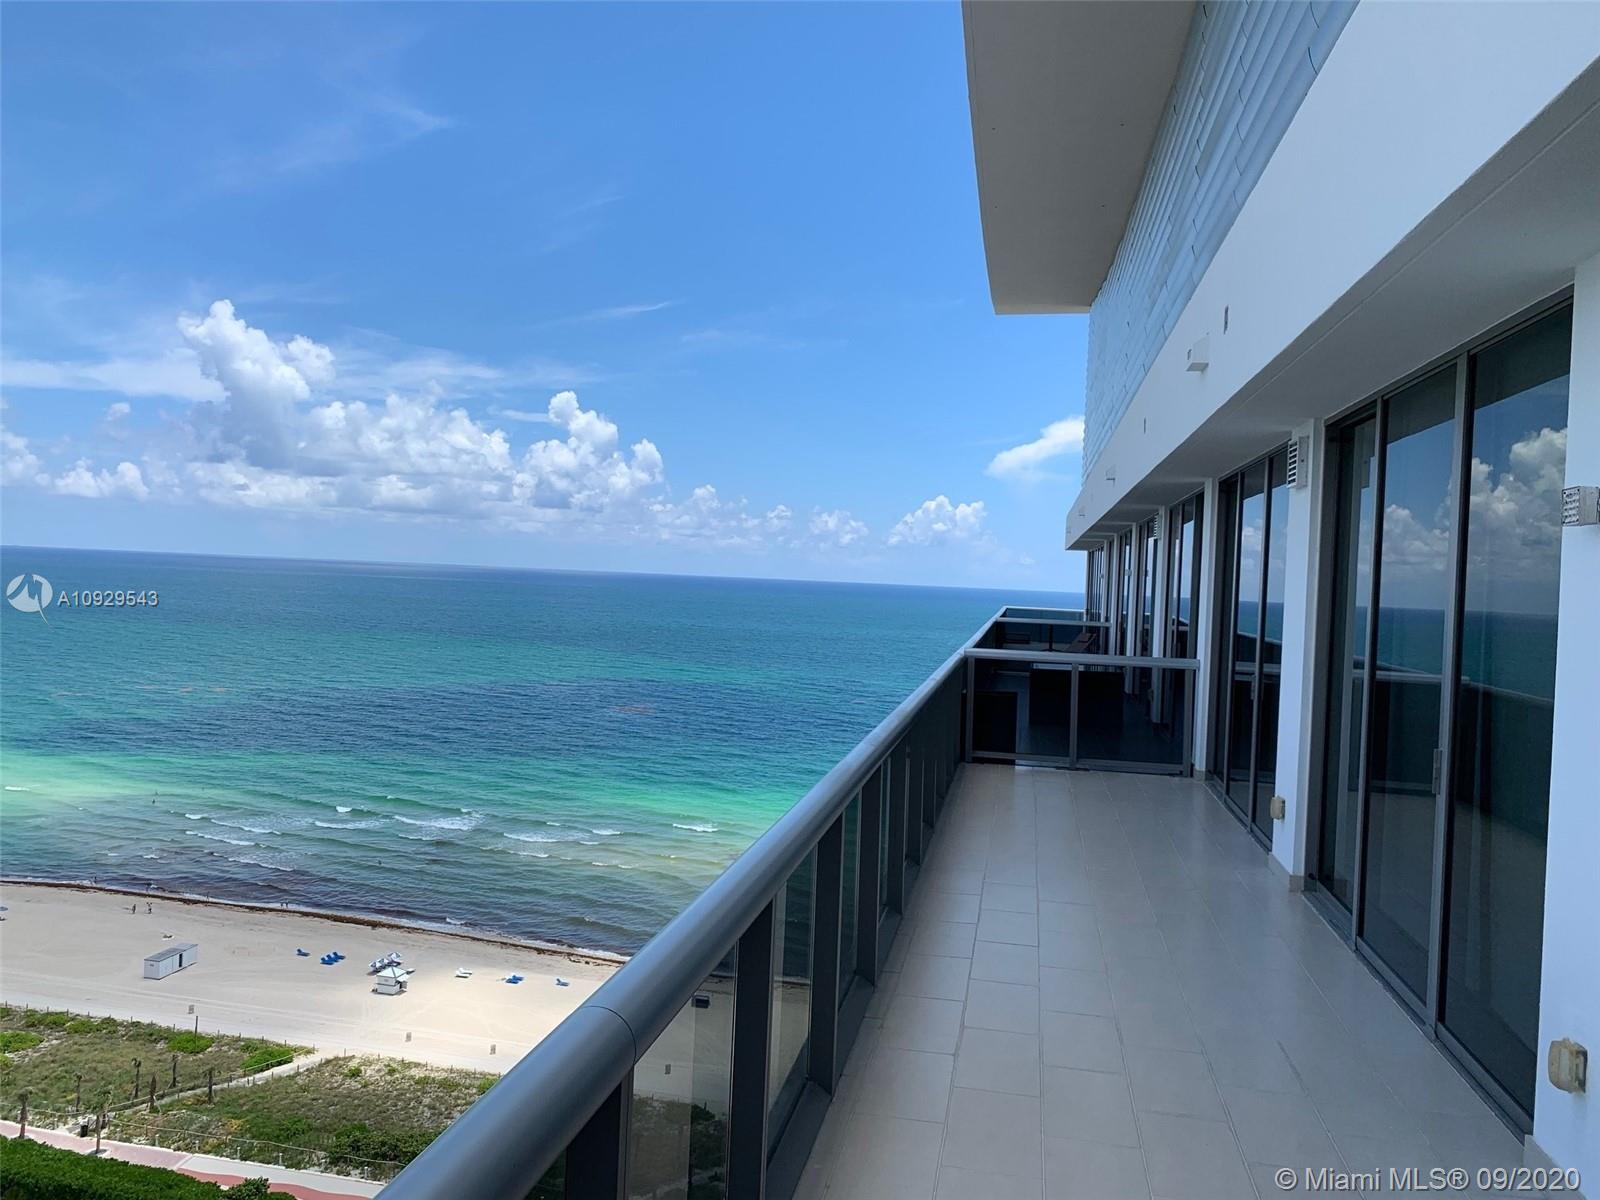 Beautiful PH apartment on state-of-the-art boutique building. Large open balcony with Ocean, Intercostal and City views. 2Br/2.5Ba featuring marble floors, high ceiling glass windows, wooden closets, Jacuzzi/Spa, Thermador and Bosch appliances, espresso maker, wine cooler and much more. Beautiful kitchen and baths, MEI condo offers superb class amenities that include concierge, beach service, spa, gym and free valet for owners/guests